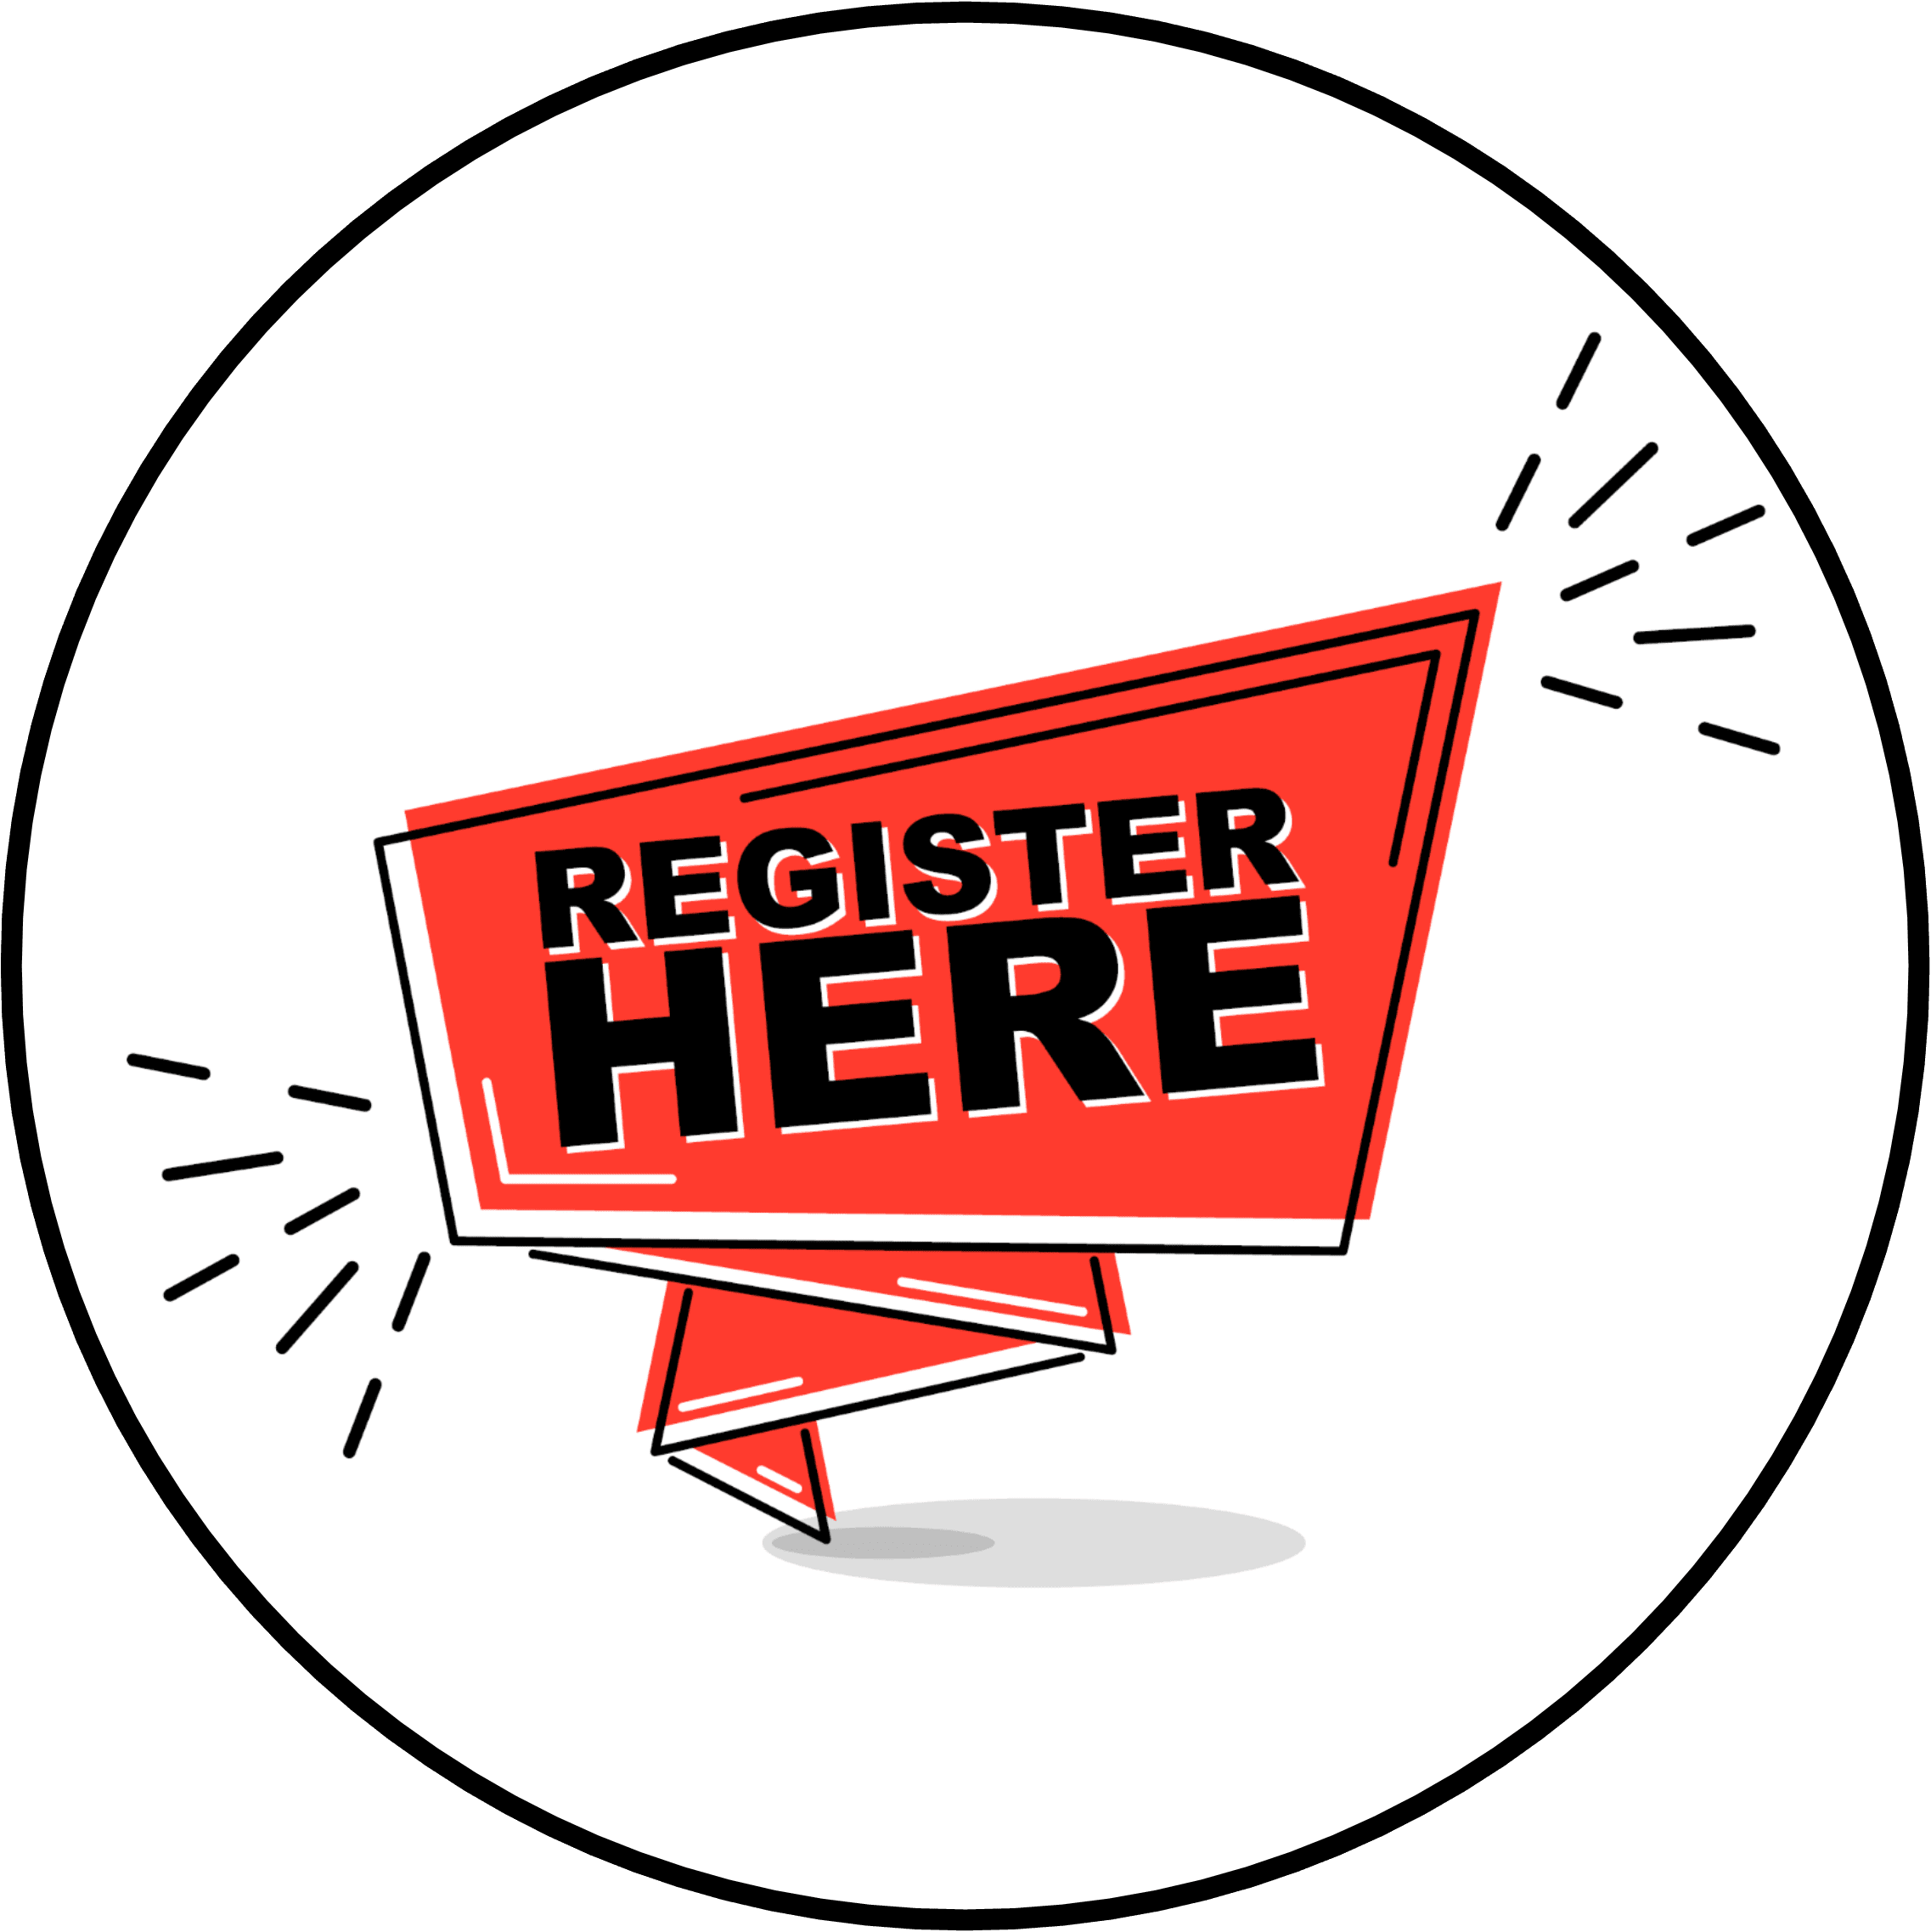 Register Here Circle